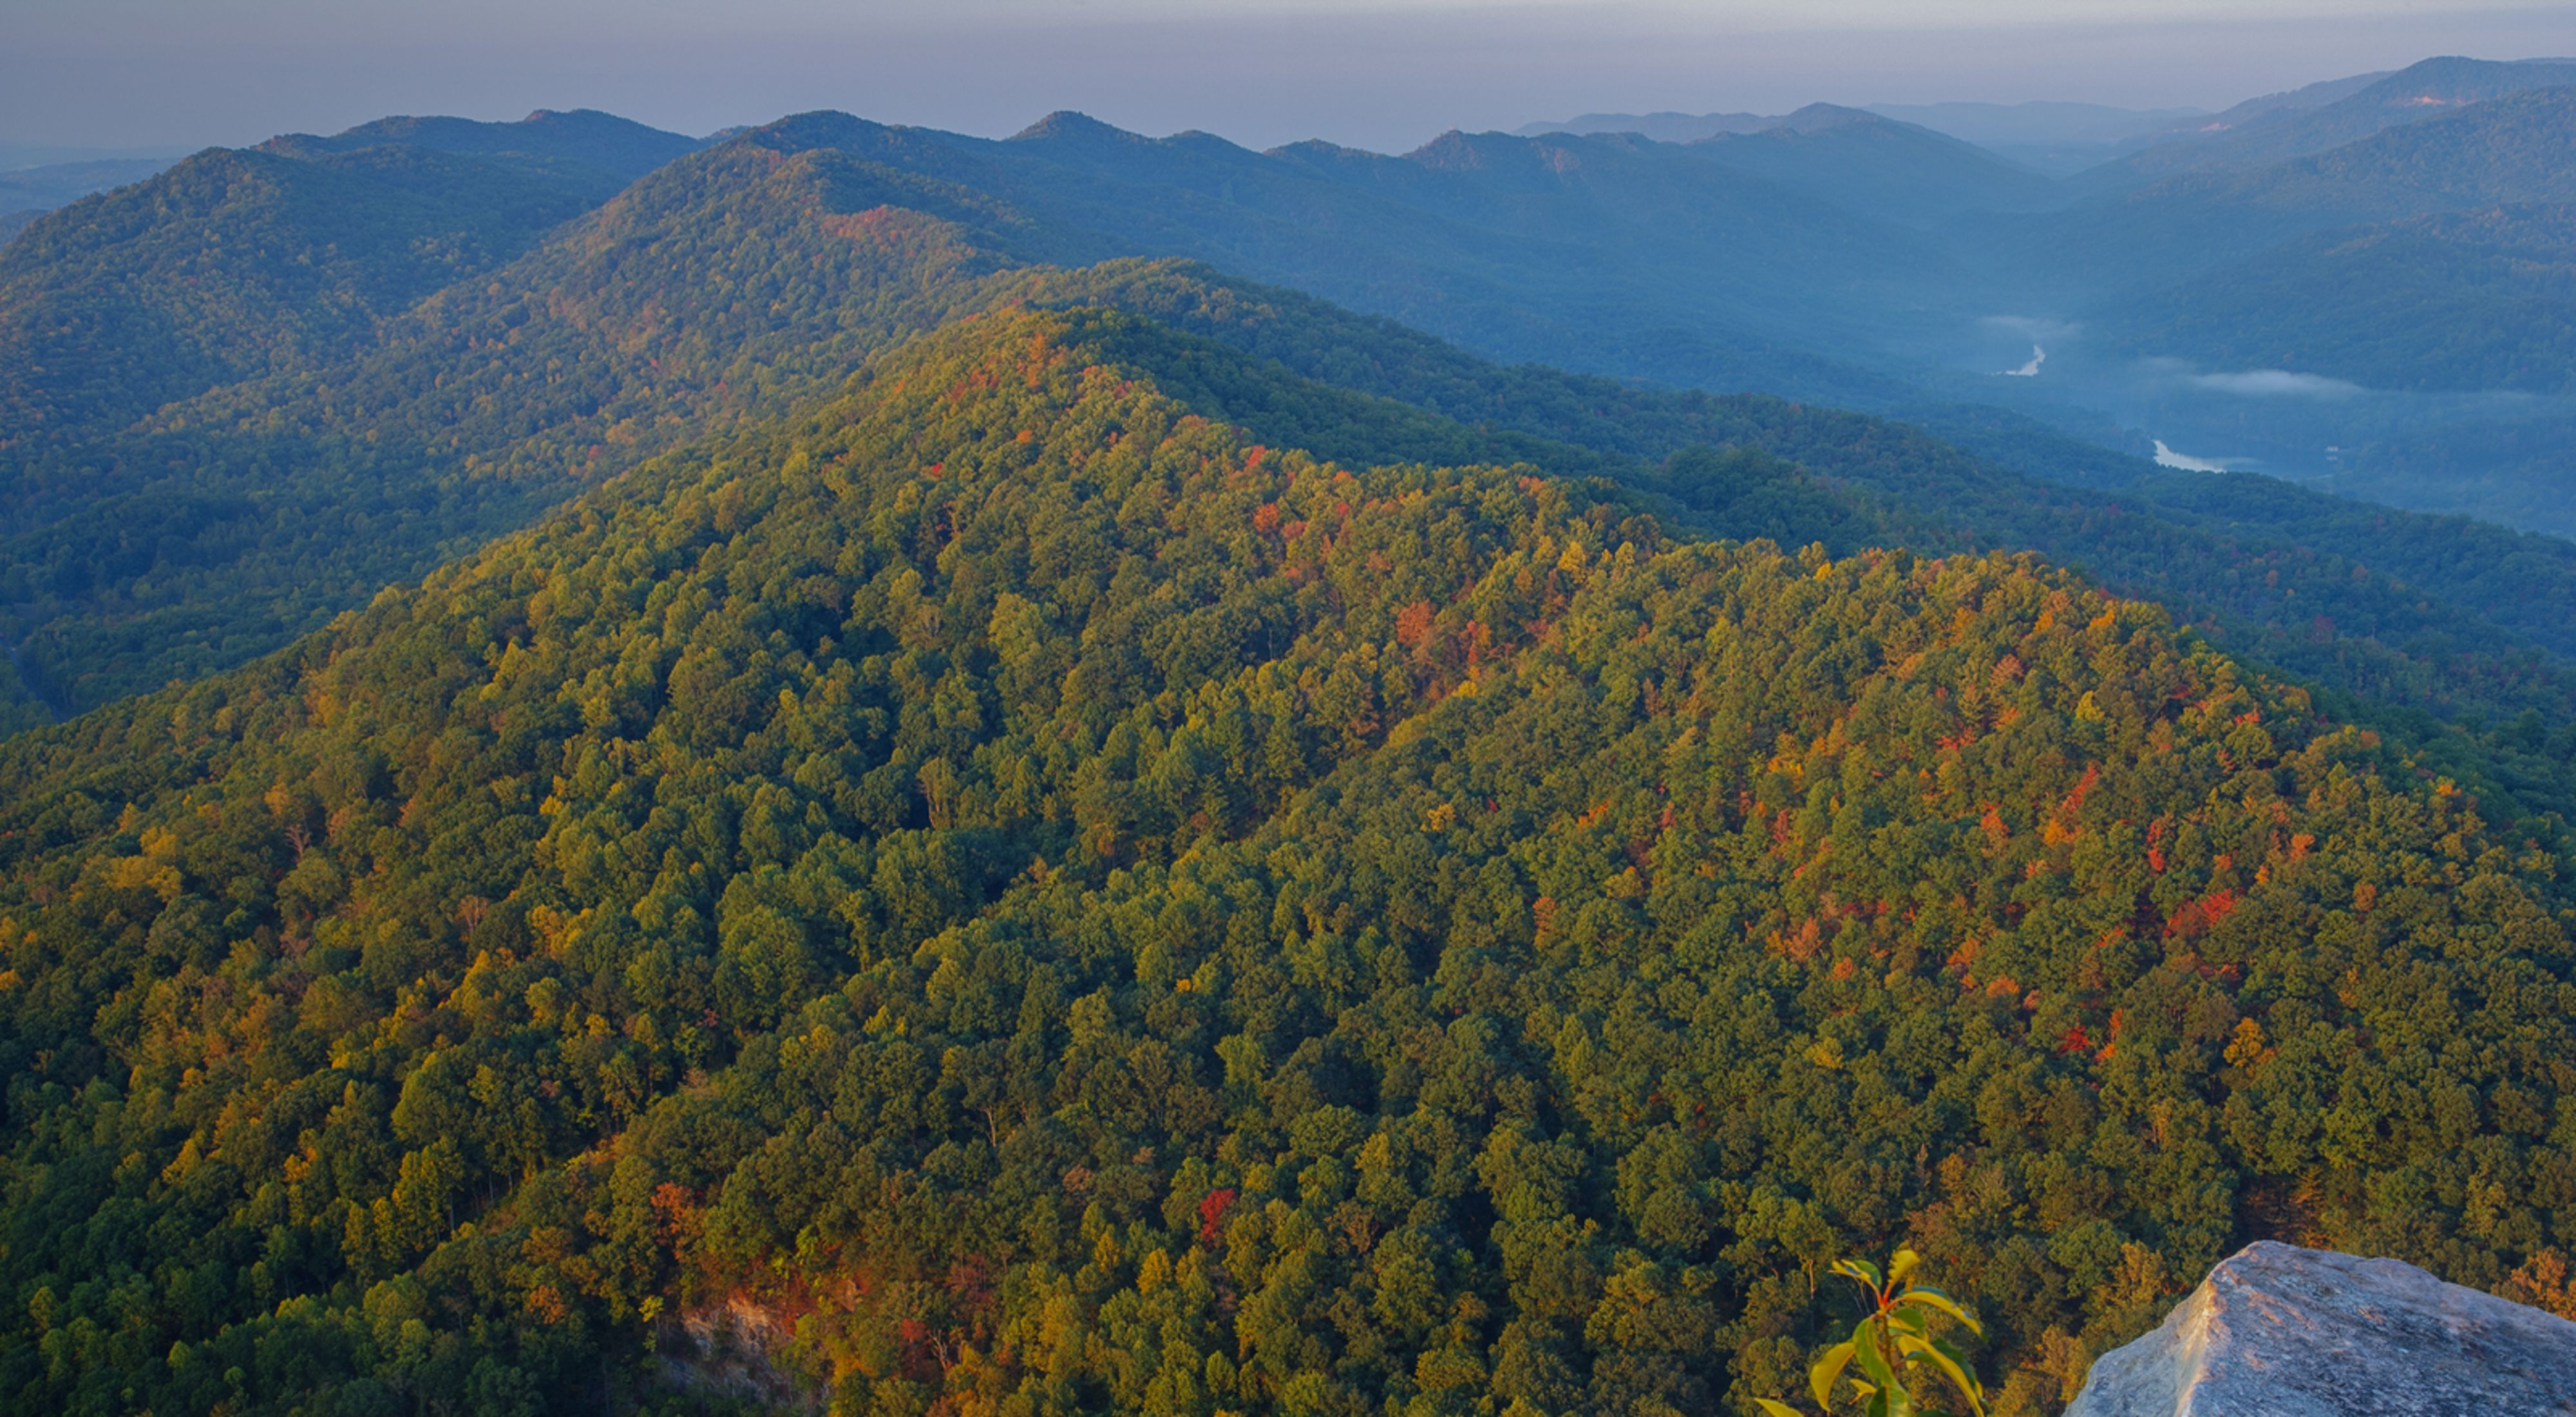 tract and Cumberland Mountains from Cumberland Gap National Historic Park in Tennessee.